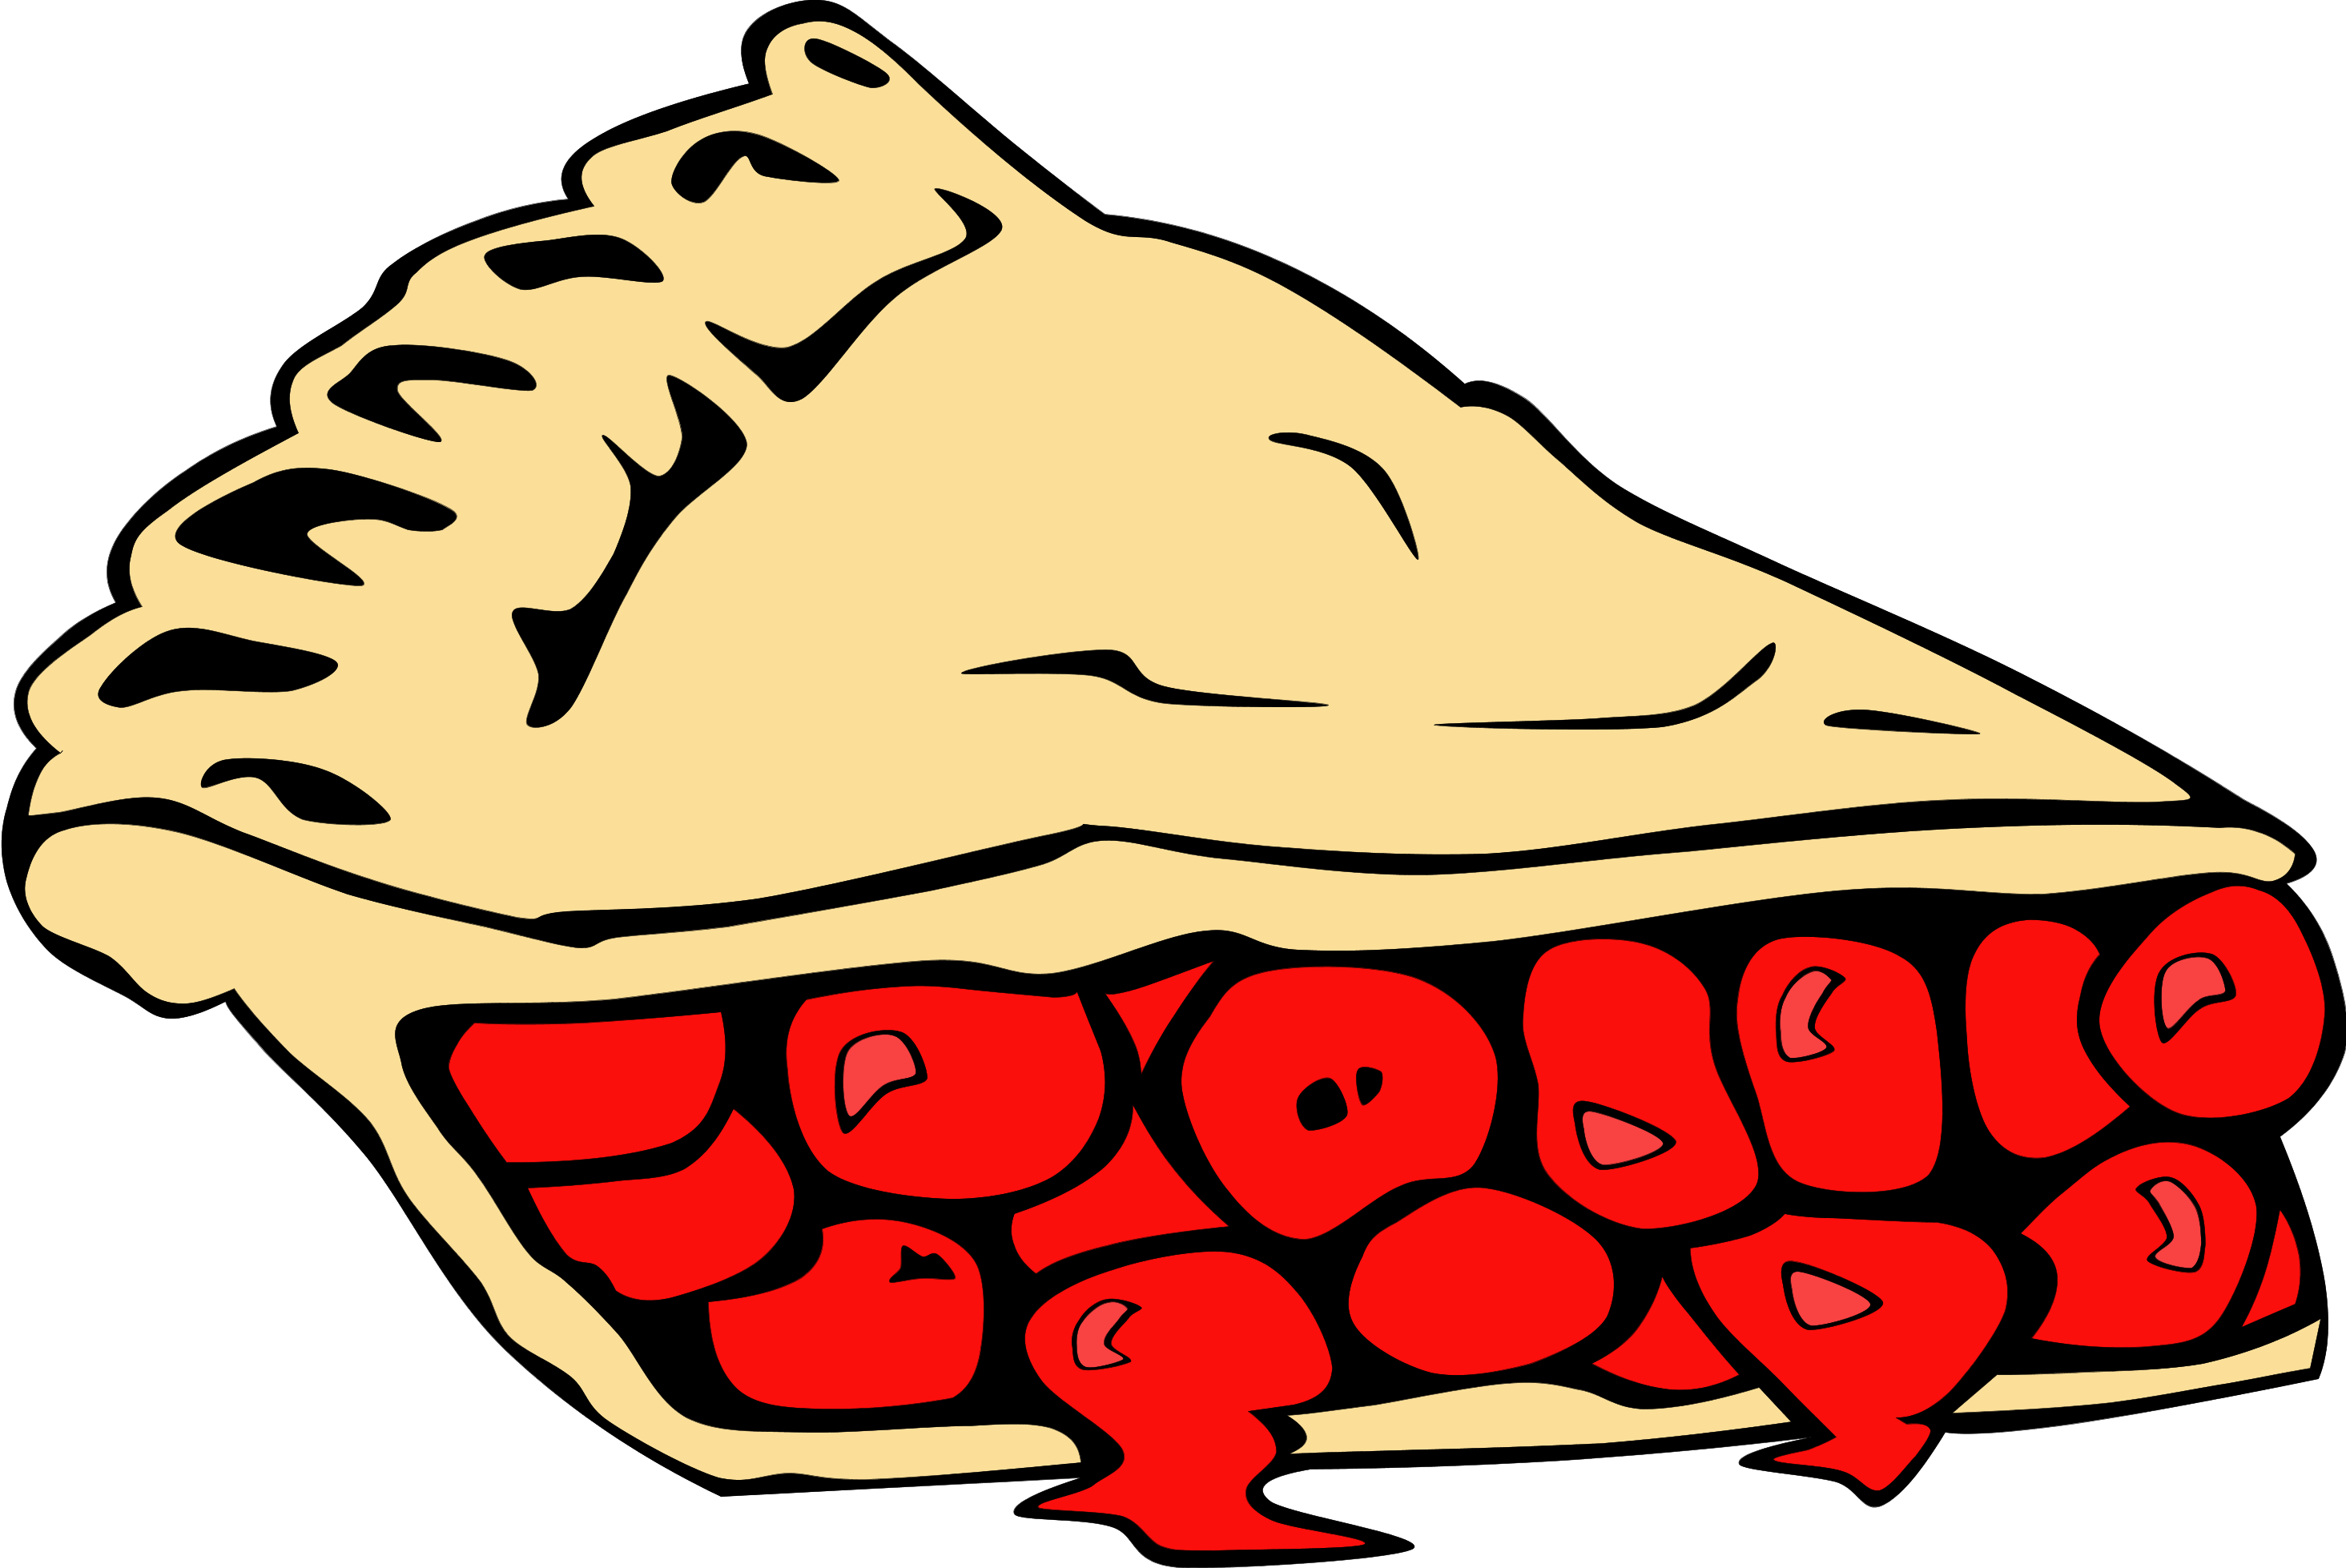 Pie clipart #14, Download drawings